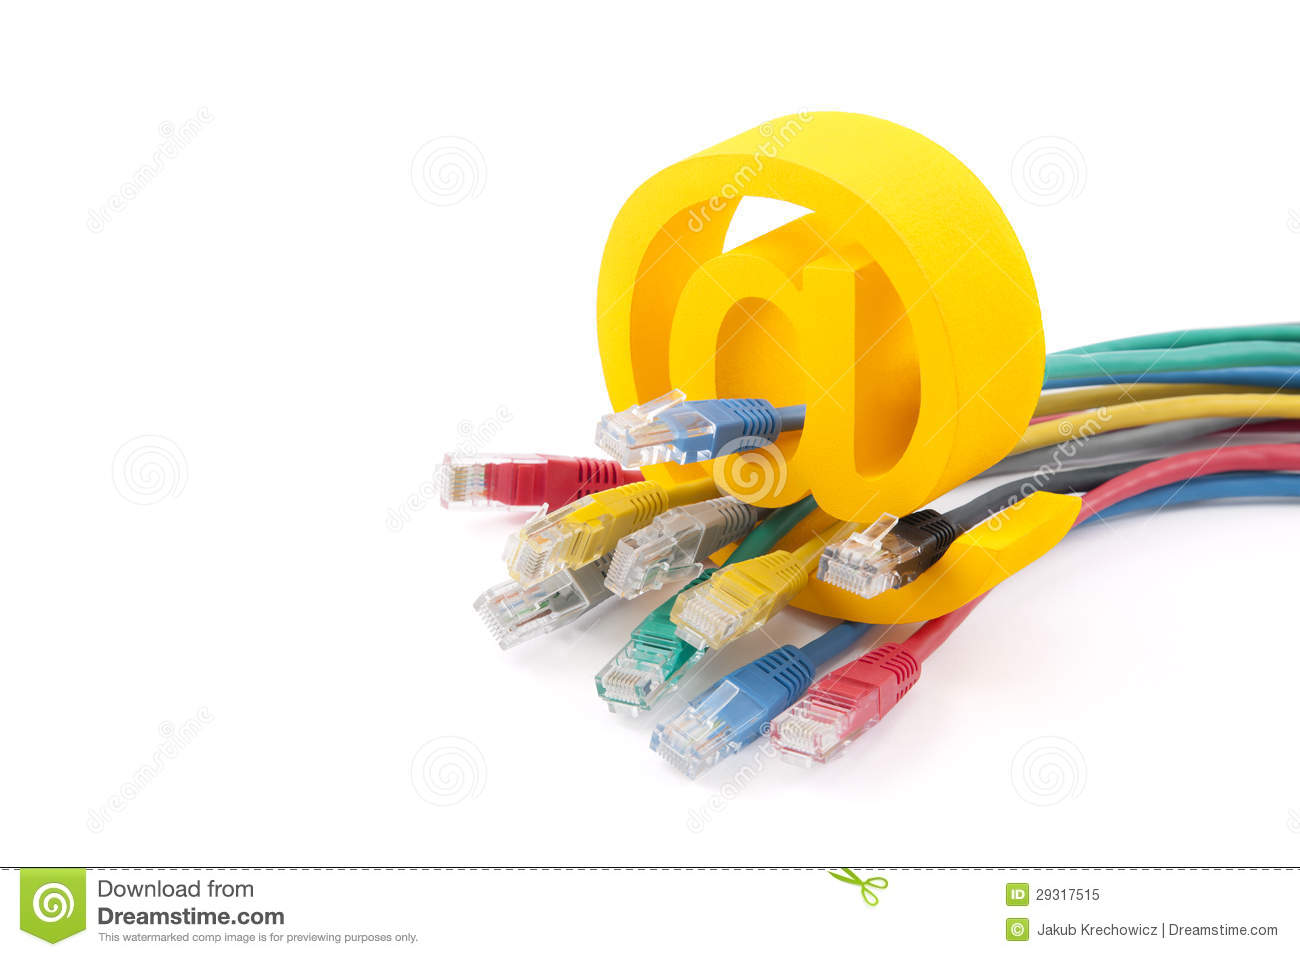 Computer network cables and email symbol